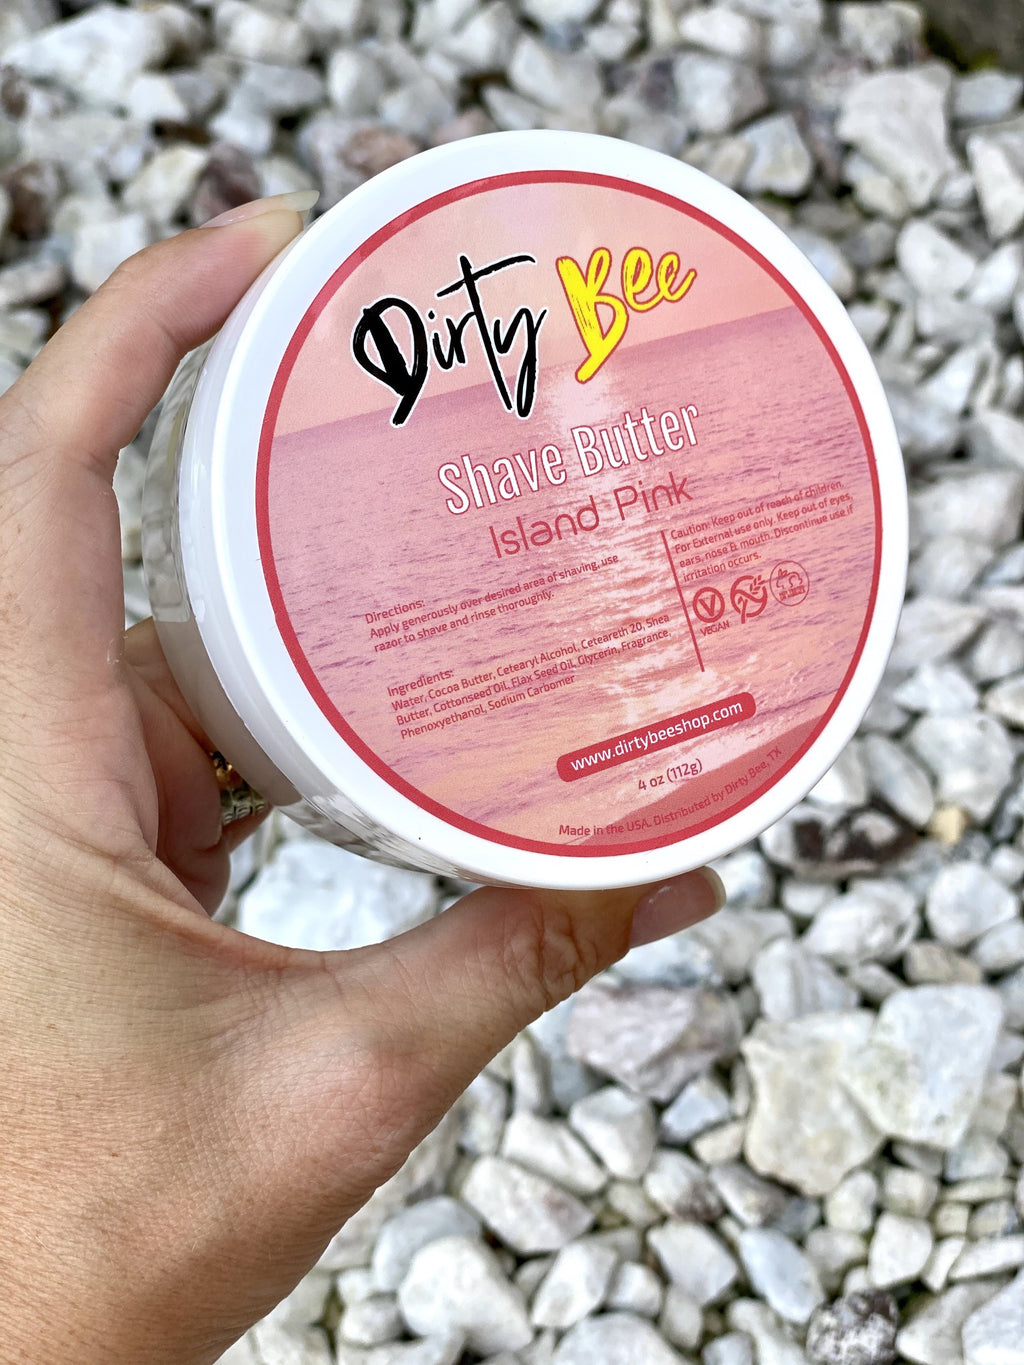 Island Pink Shave Butter-Bath & Body, Dirty Bee, Dropship, Island Pink, Made in the USA, Shave-Womens Artisan USA American Made Clothing Accessories